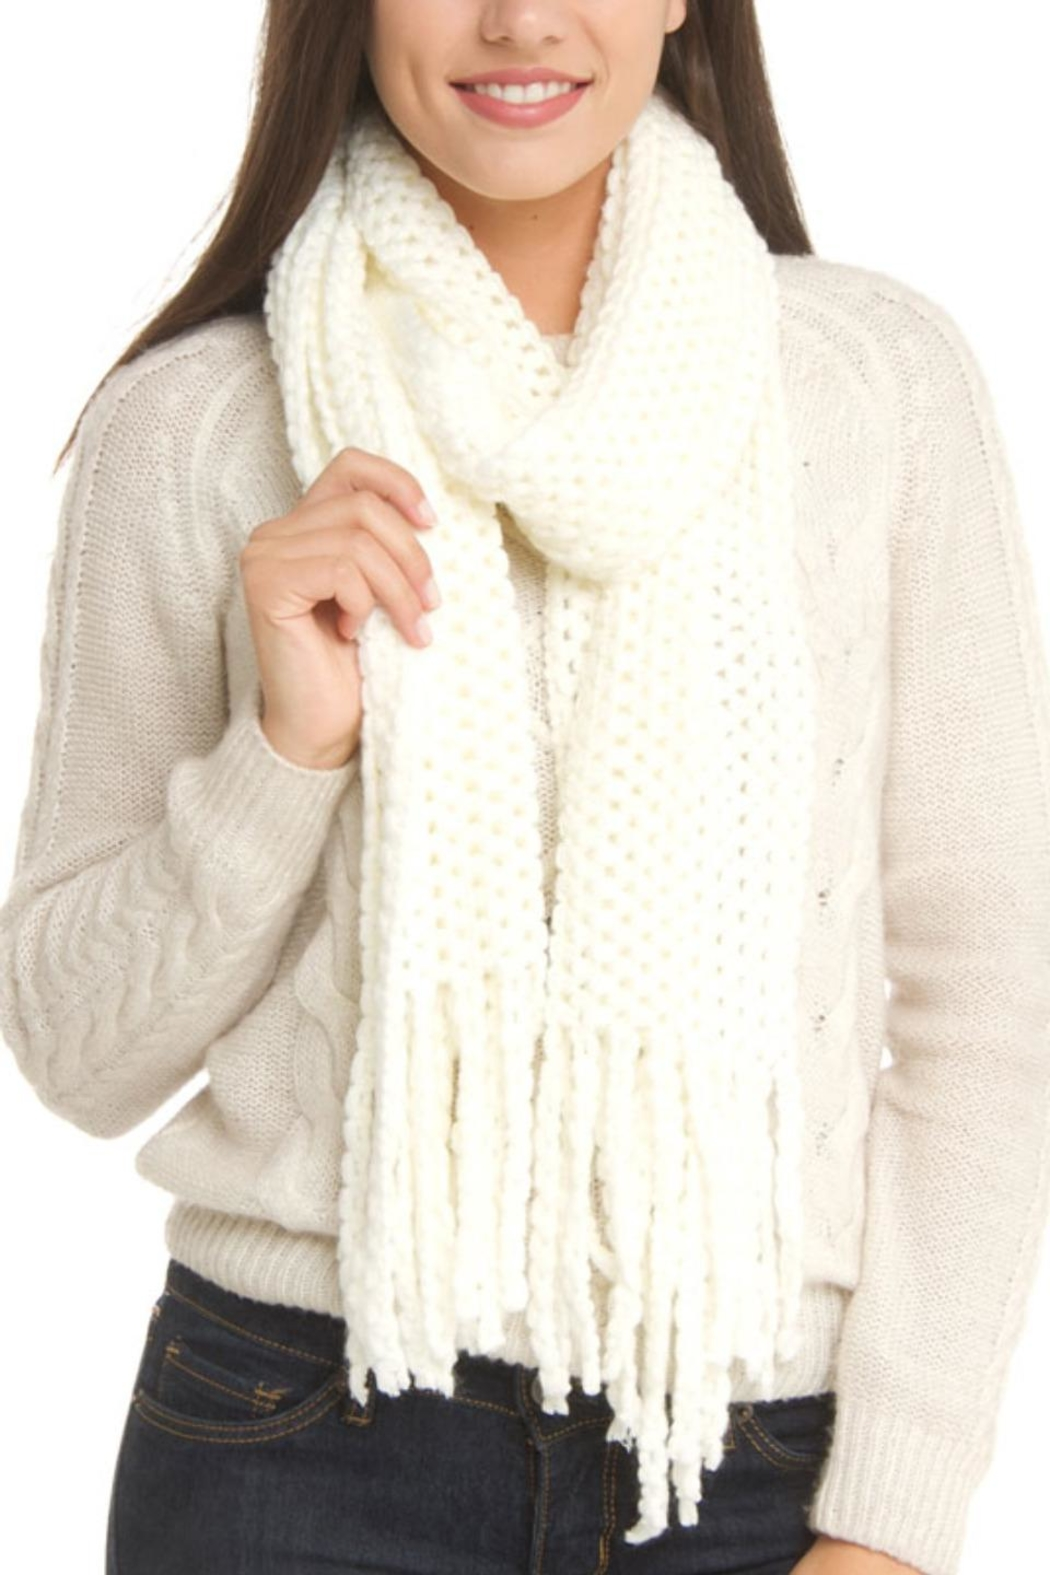 Violet Del Mar Knitted White Scarf - Main Image